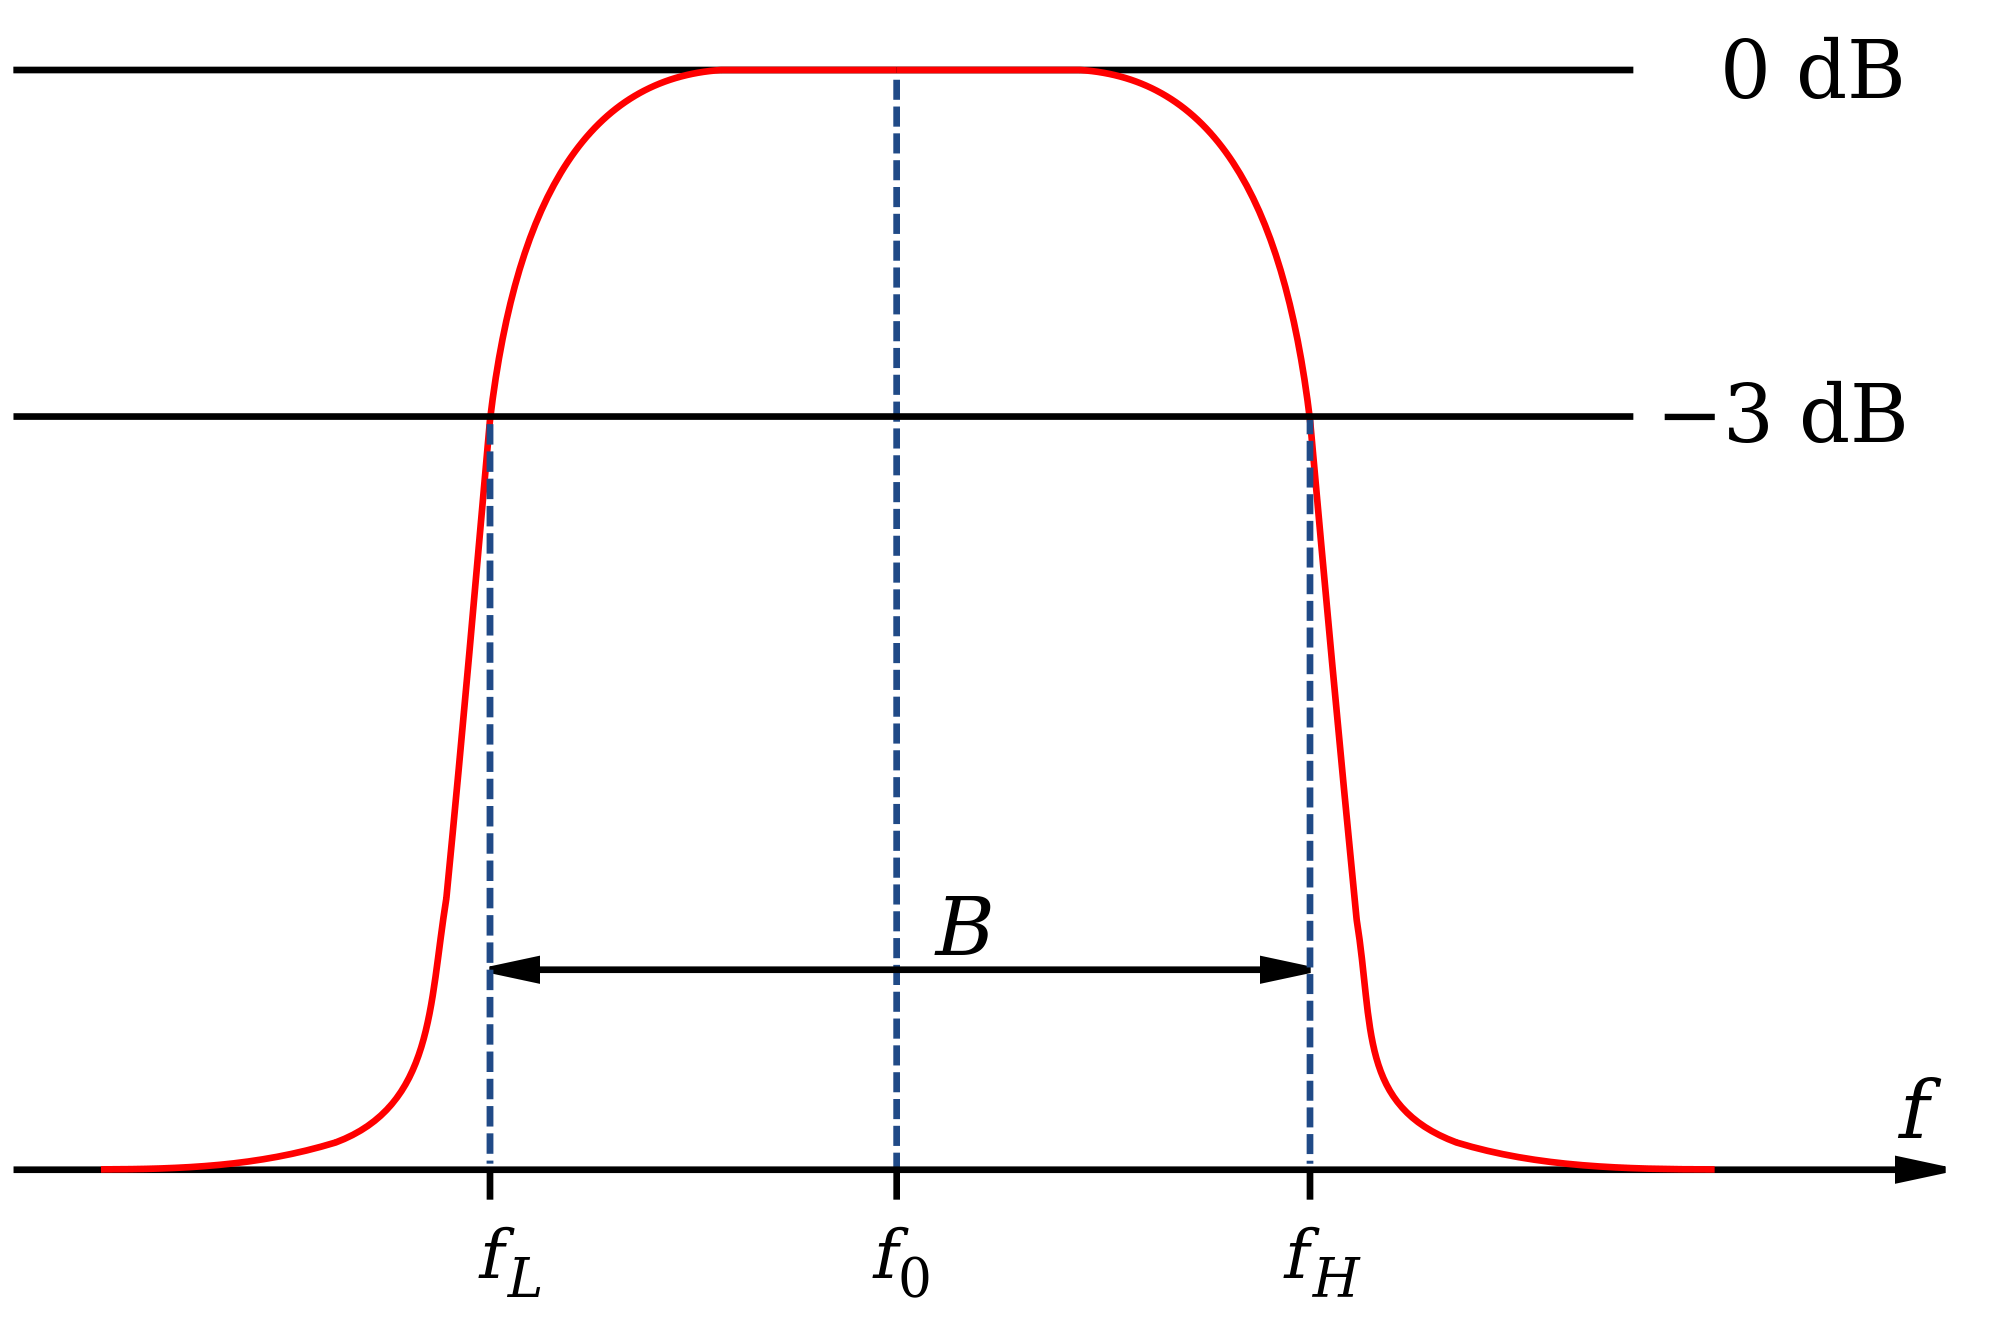 [Band-pass Filter Graph]